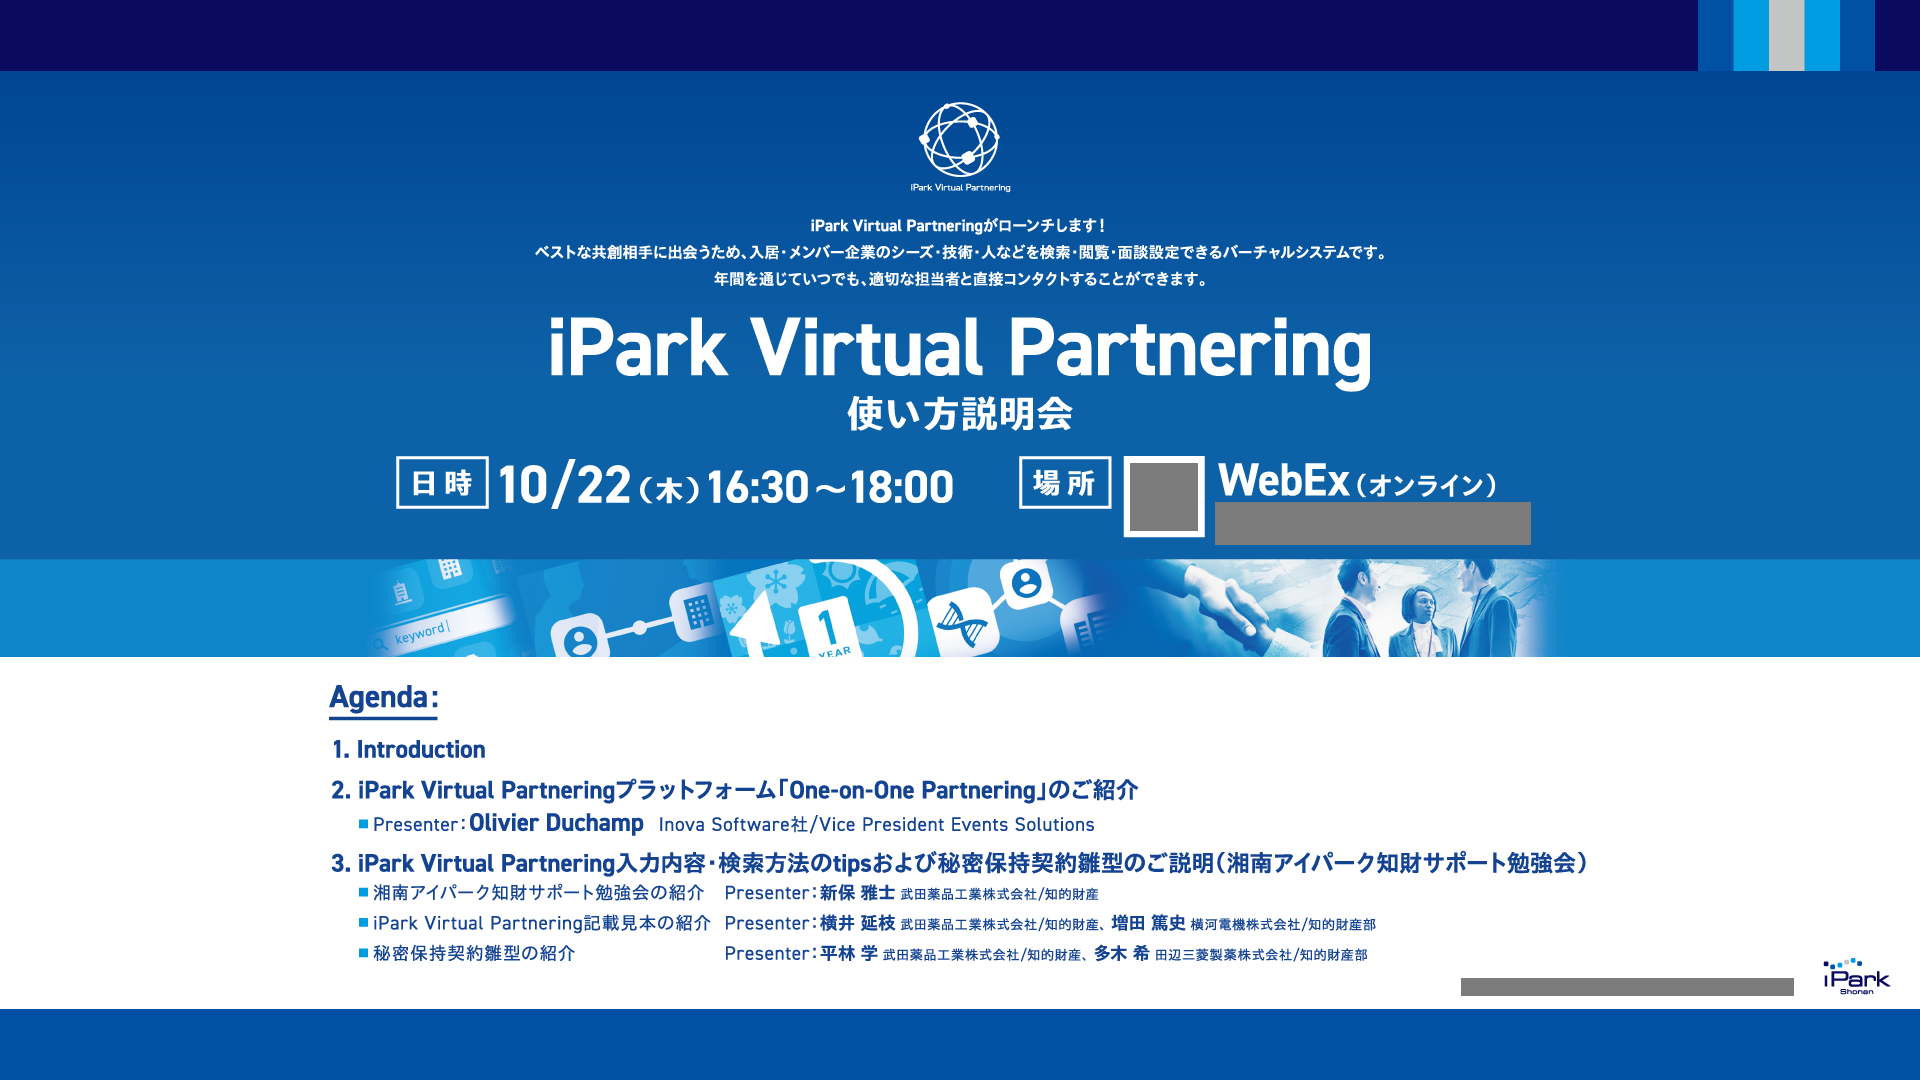 201022-iPark-Virtual-Partnering.png